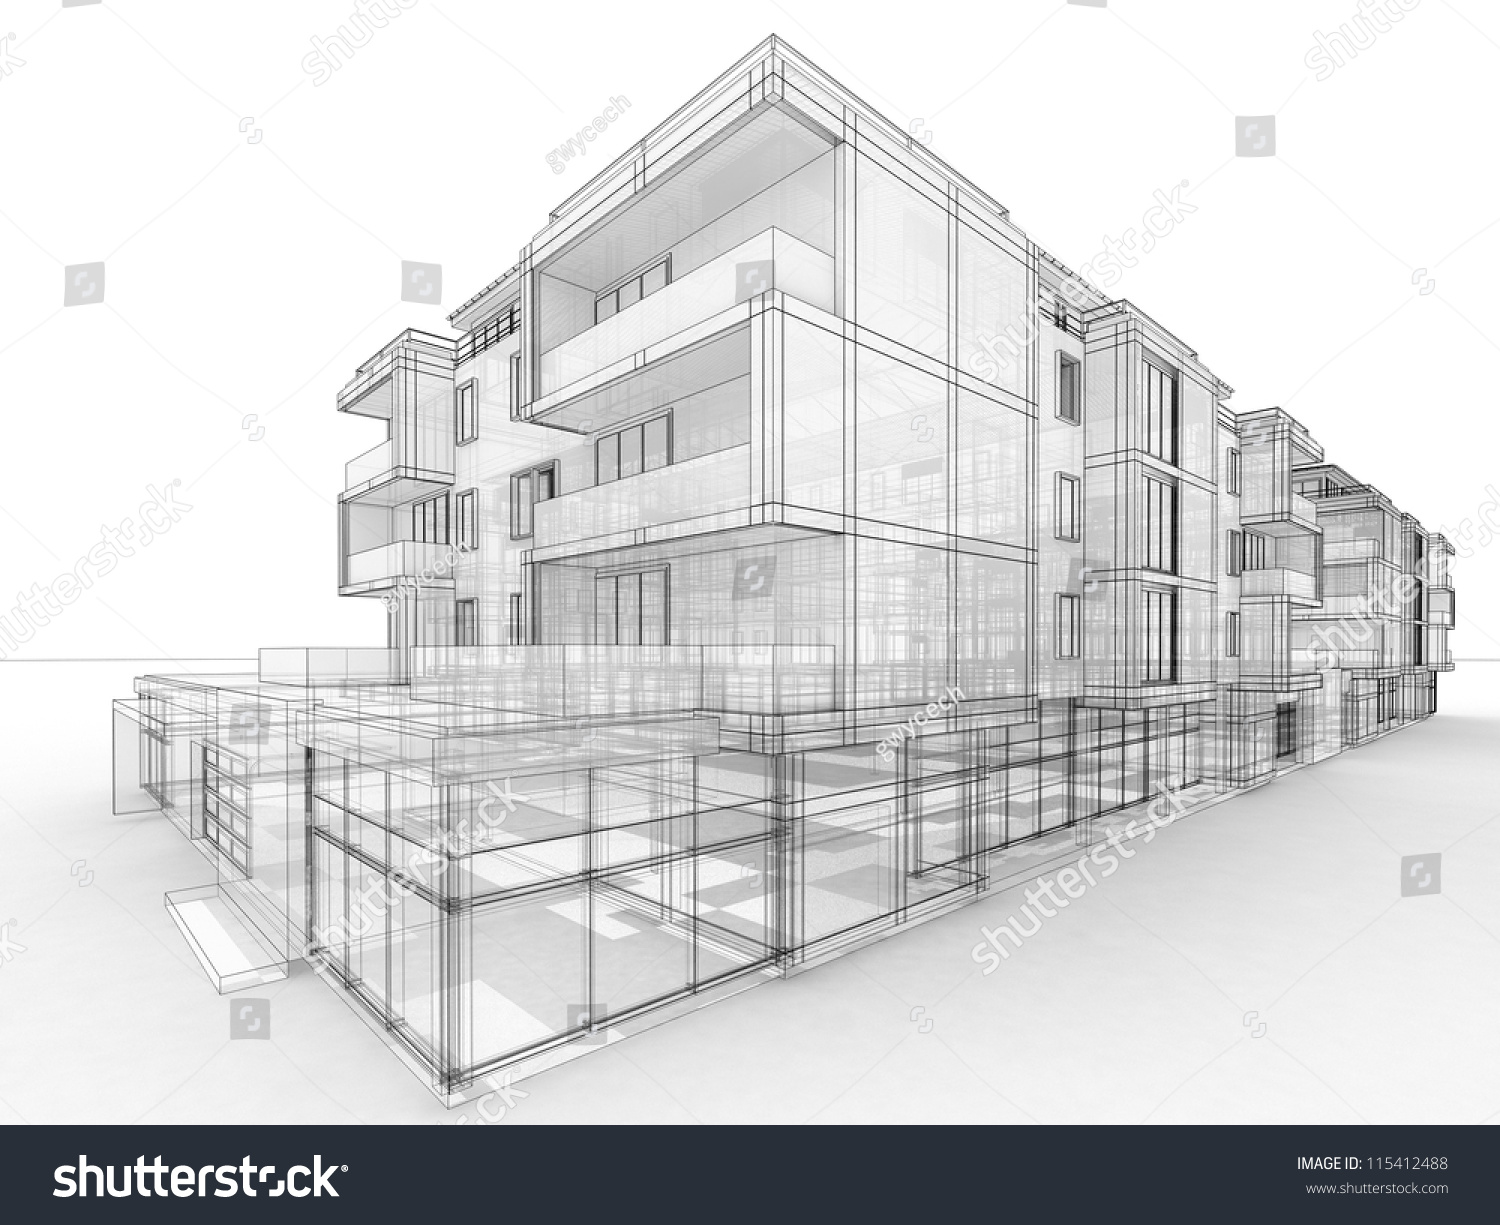 Apartment building design concept architects computer for Concept building